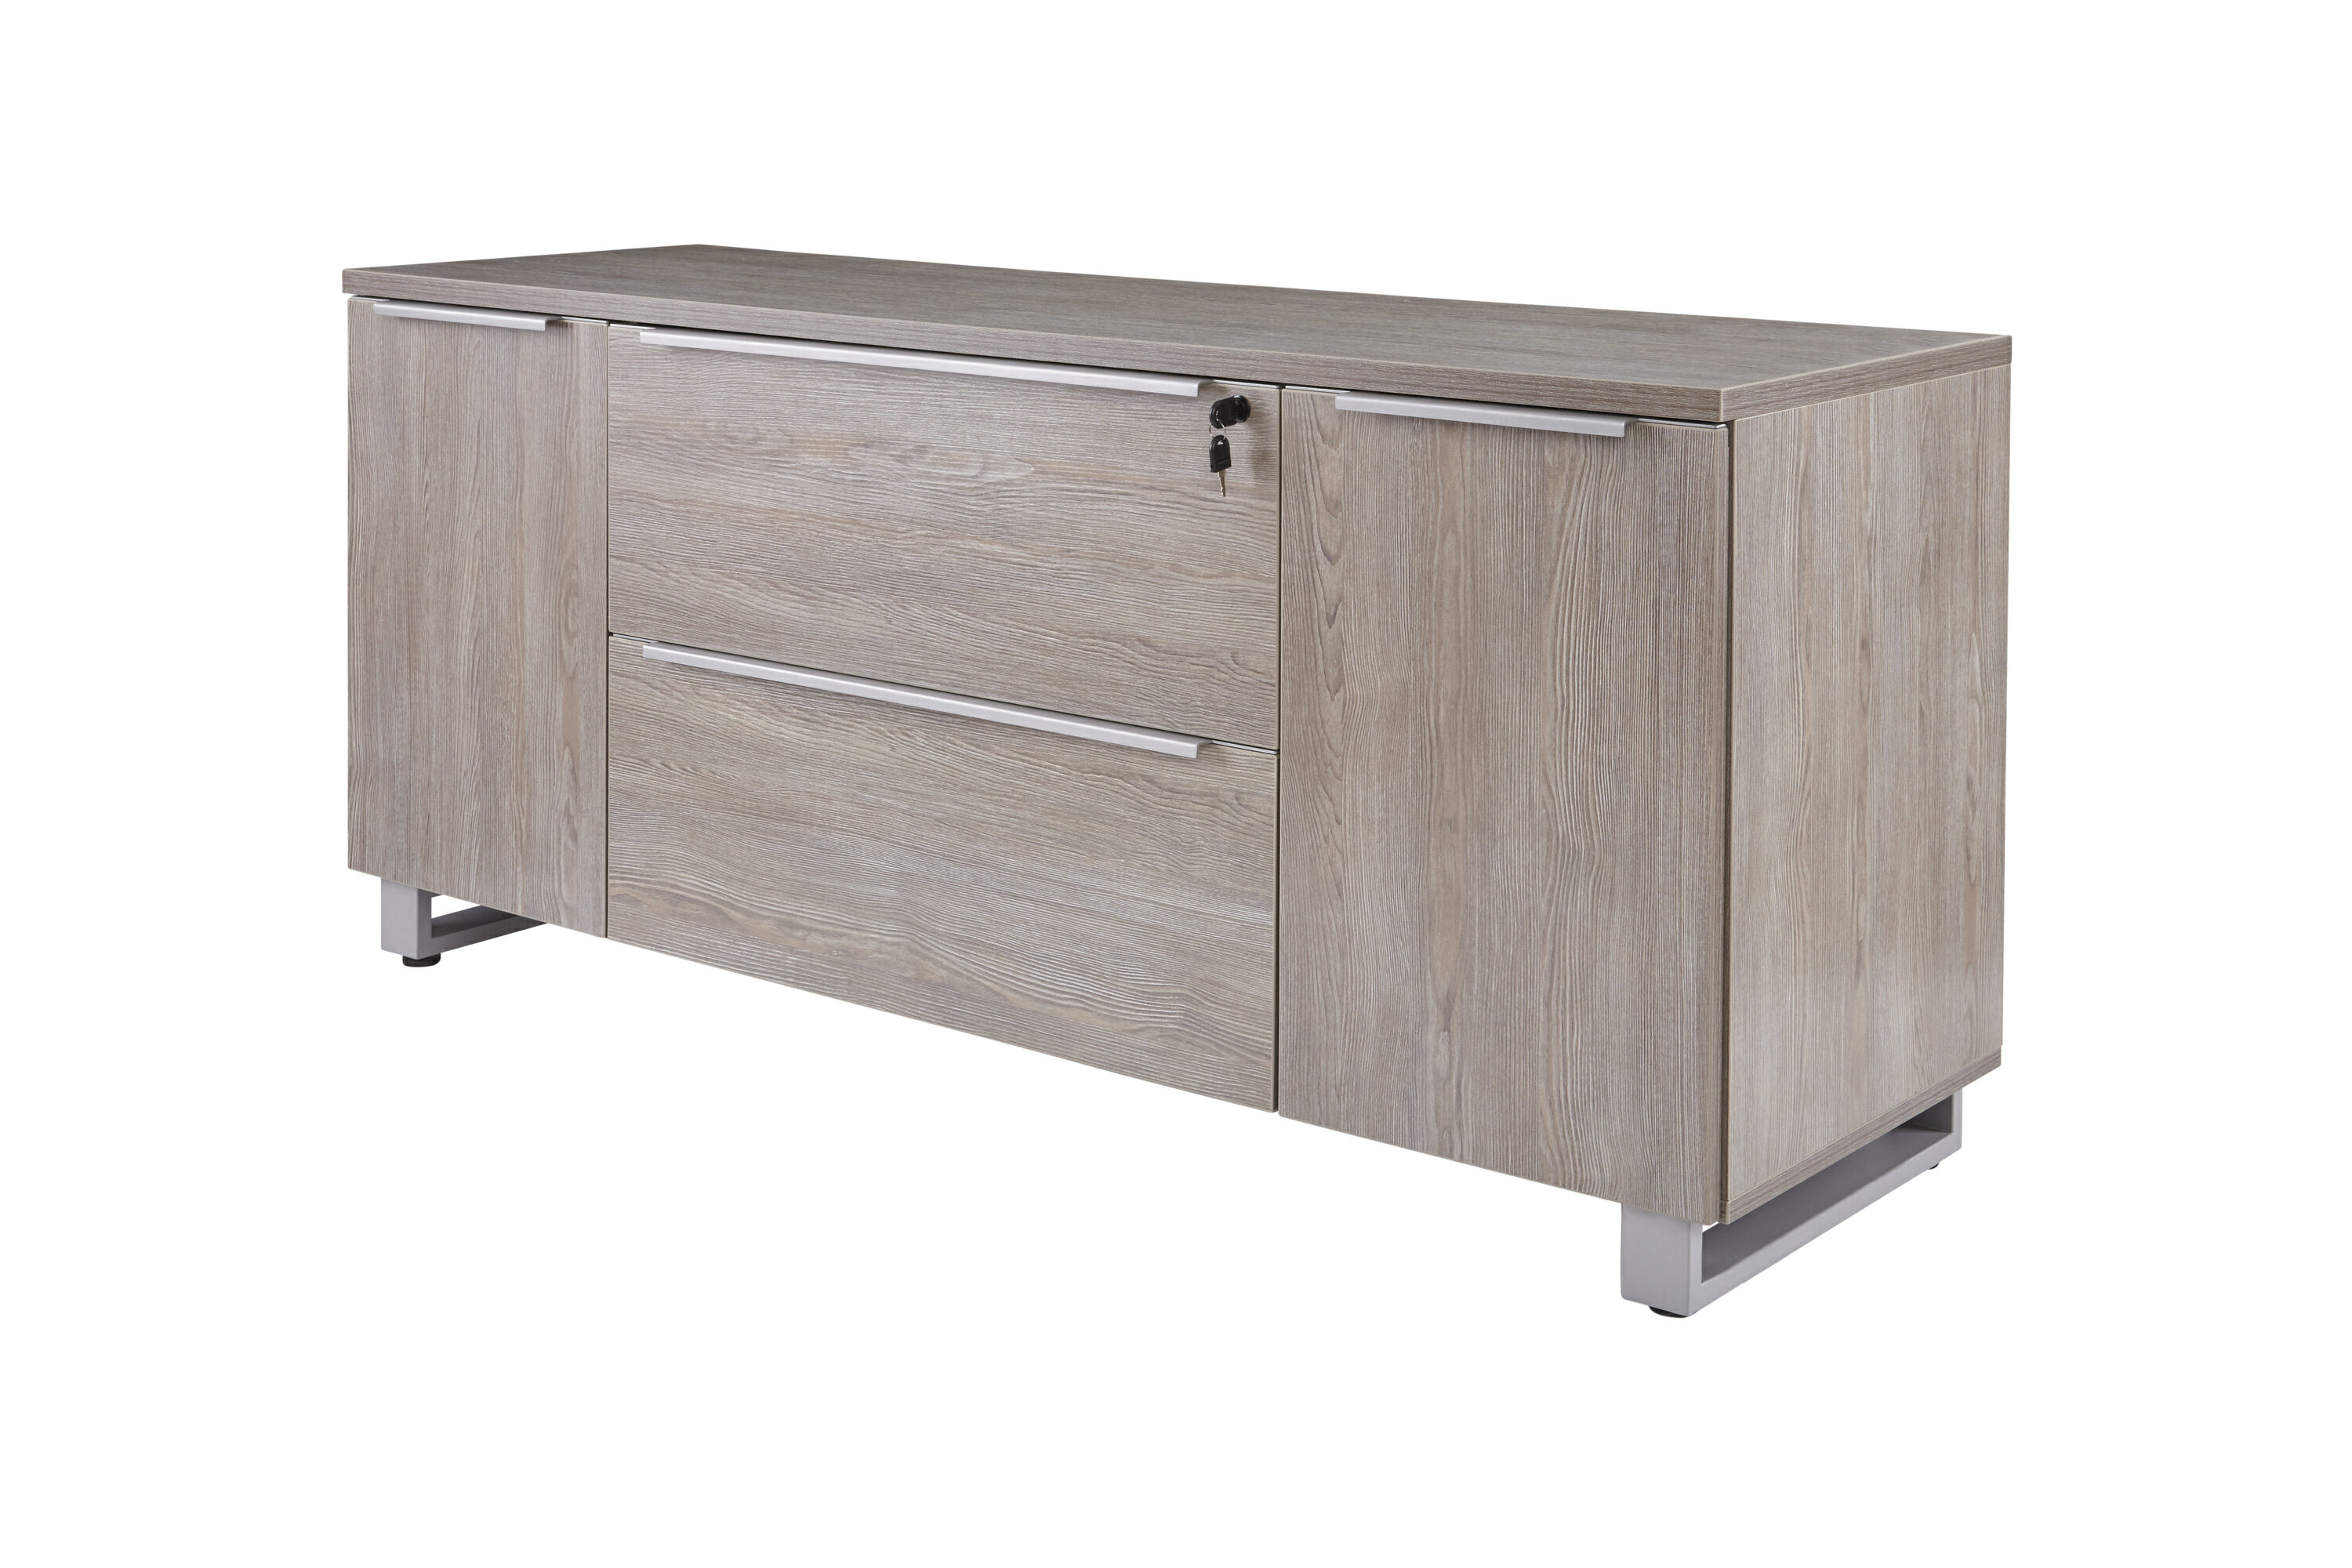 Fantastic Ose 2 Drawer Lateral Filing Cabinet Interior Design Ideas Jittwwsoteloinfo